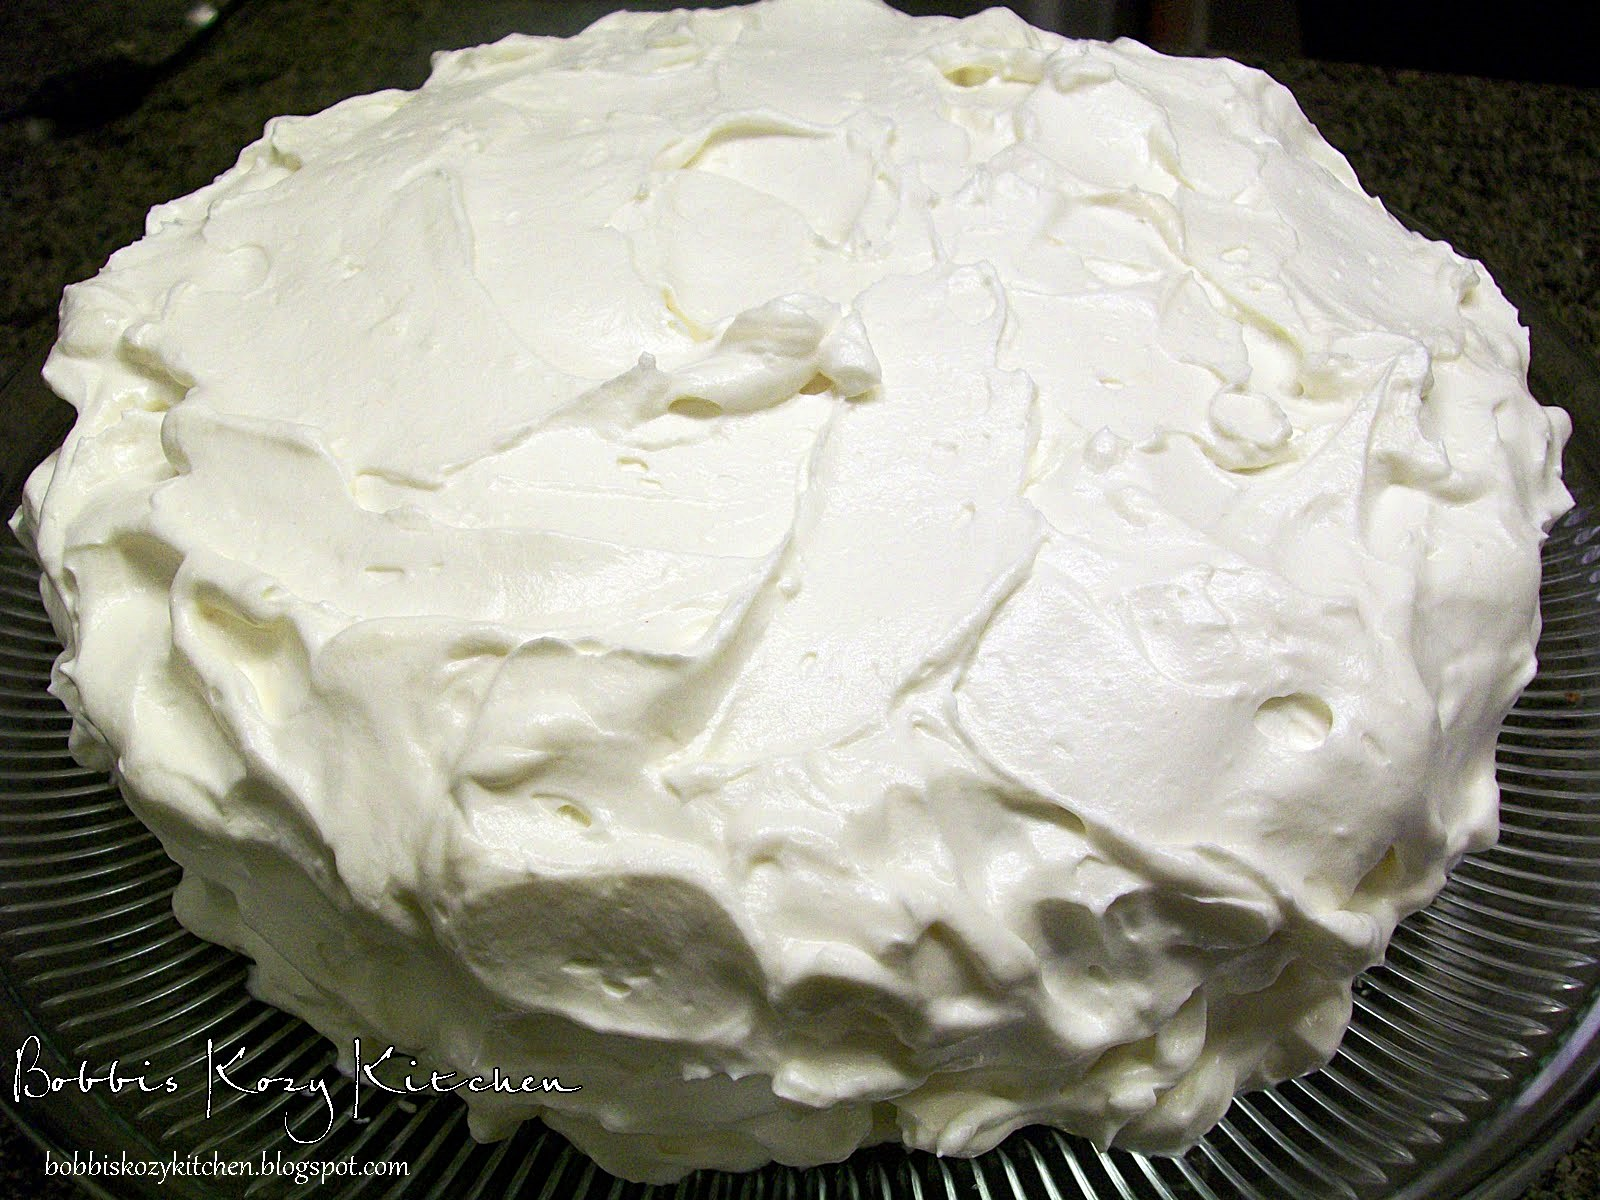 Bobbi's Kozy Kitchen: Pumpkin Spice Cake with Cream Cheese Frosting